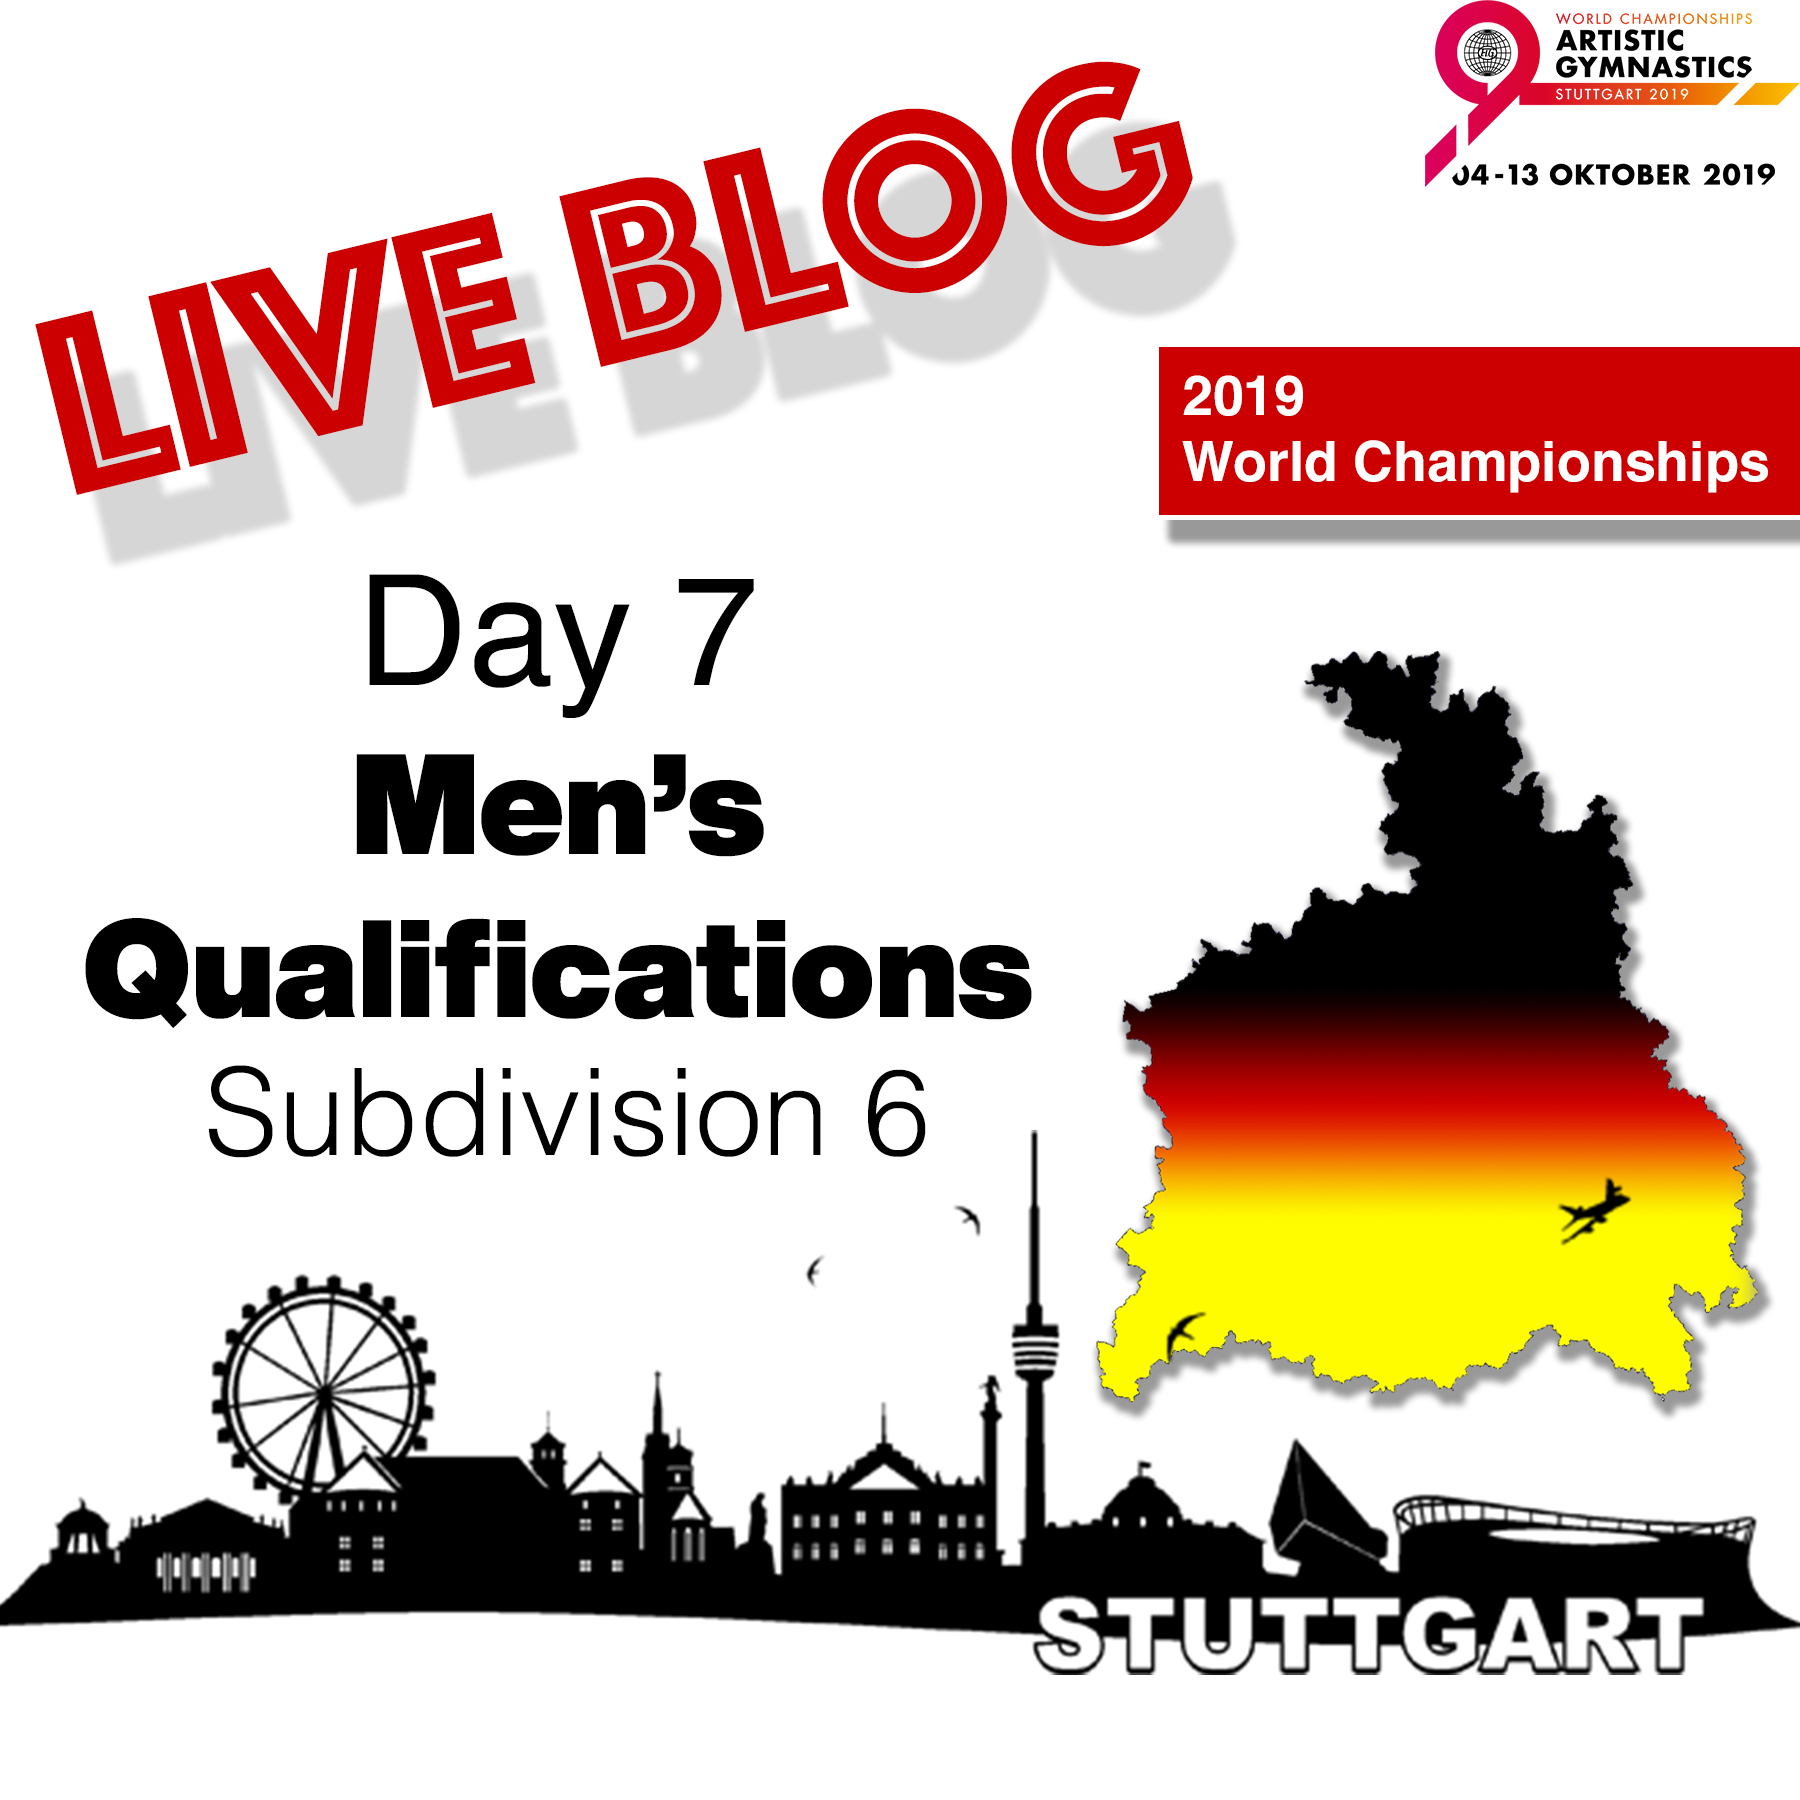 Live Blog: 2019 World Championships – MAG Qualifications – Sub Division 6, Oct. 7th